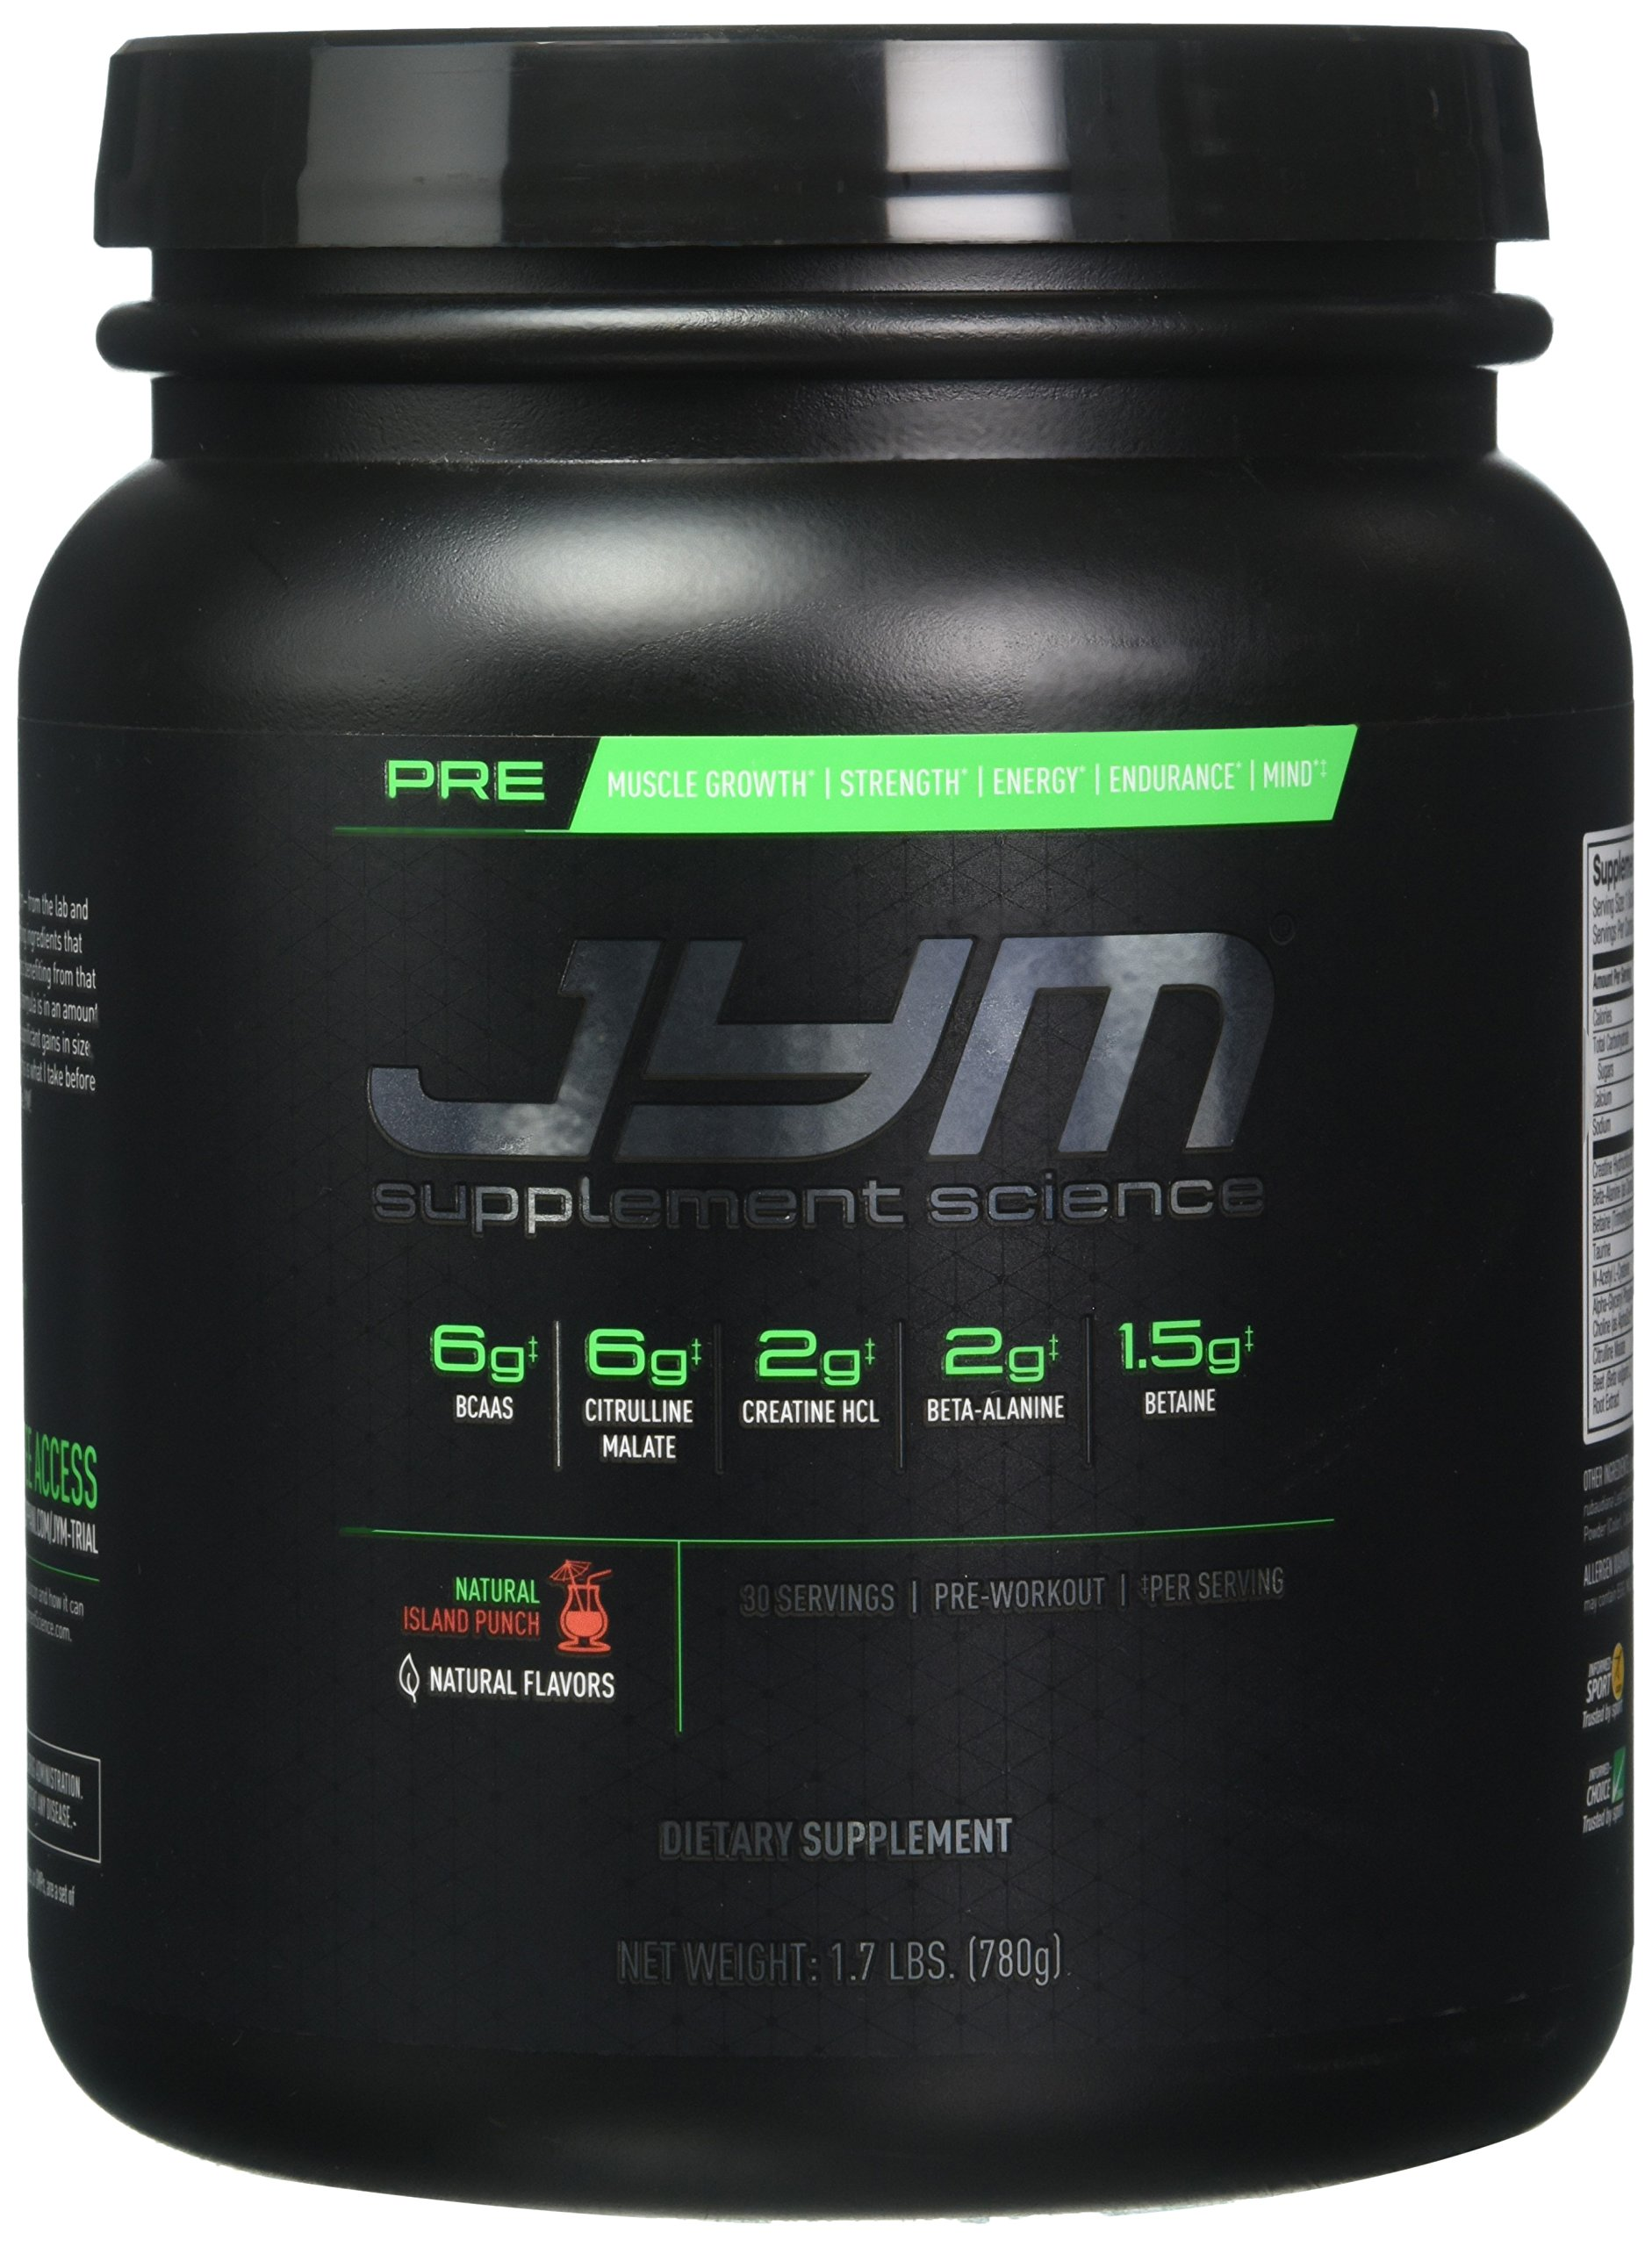 JYM Supplement Science, PRE JYM, Pre-Workout with BCAA's, Creatine HCl, Citrulline Malate, Beta-alanine, Betaine, Alpha-GPC, Beet Root Extract and more, Natural Island Punch, 30 Servings